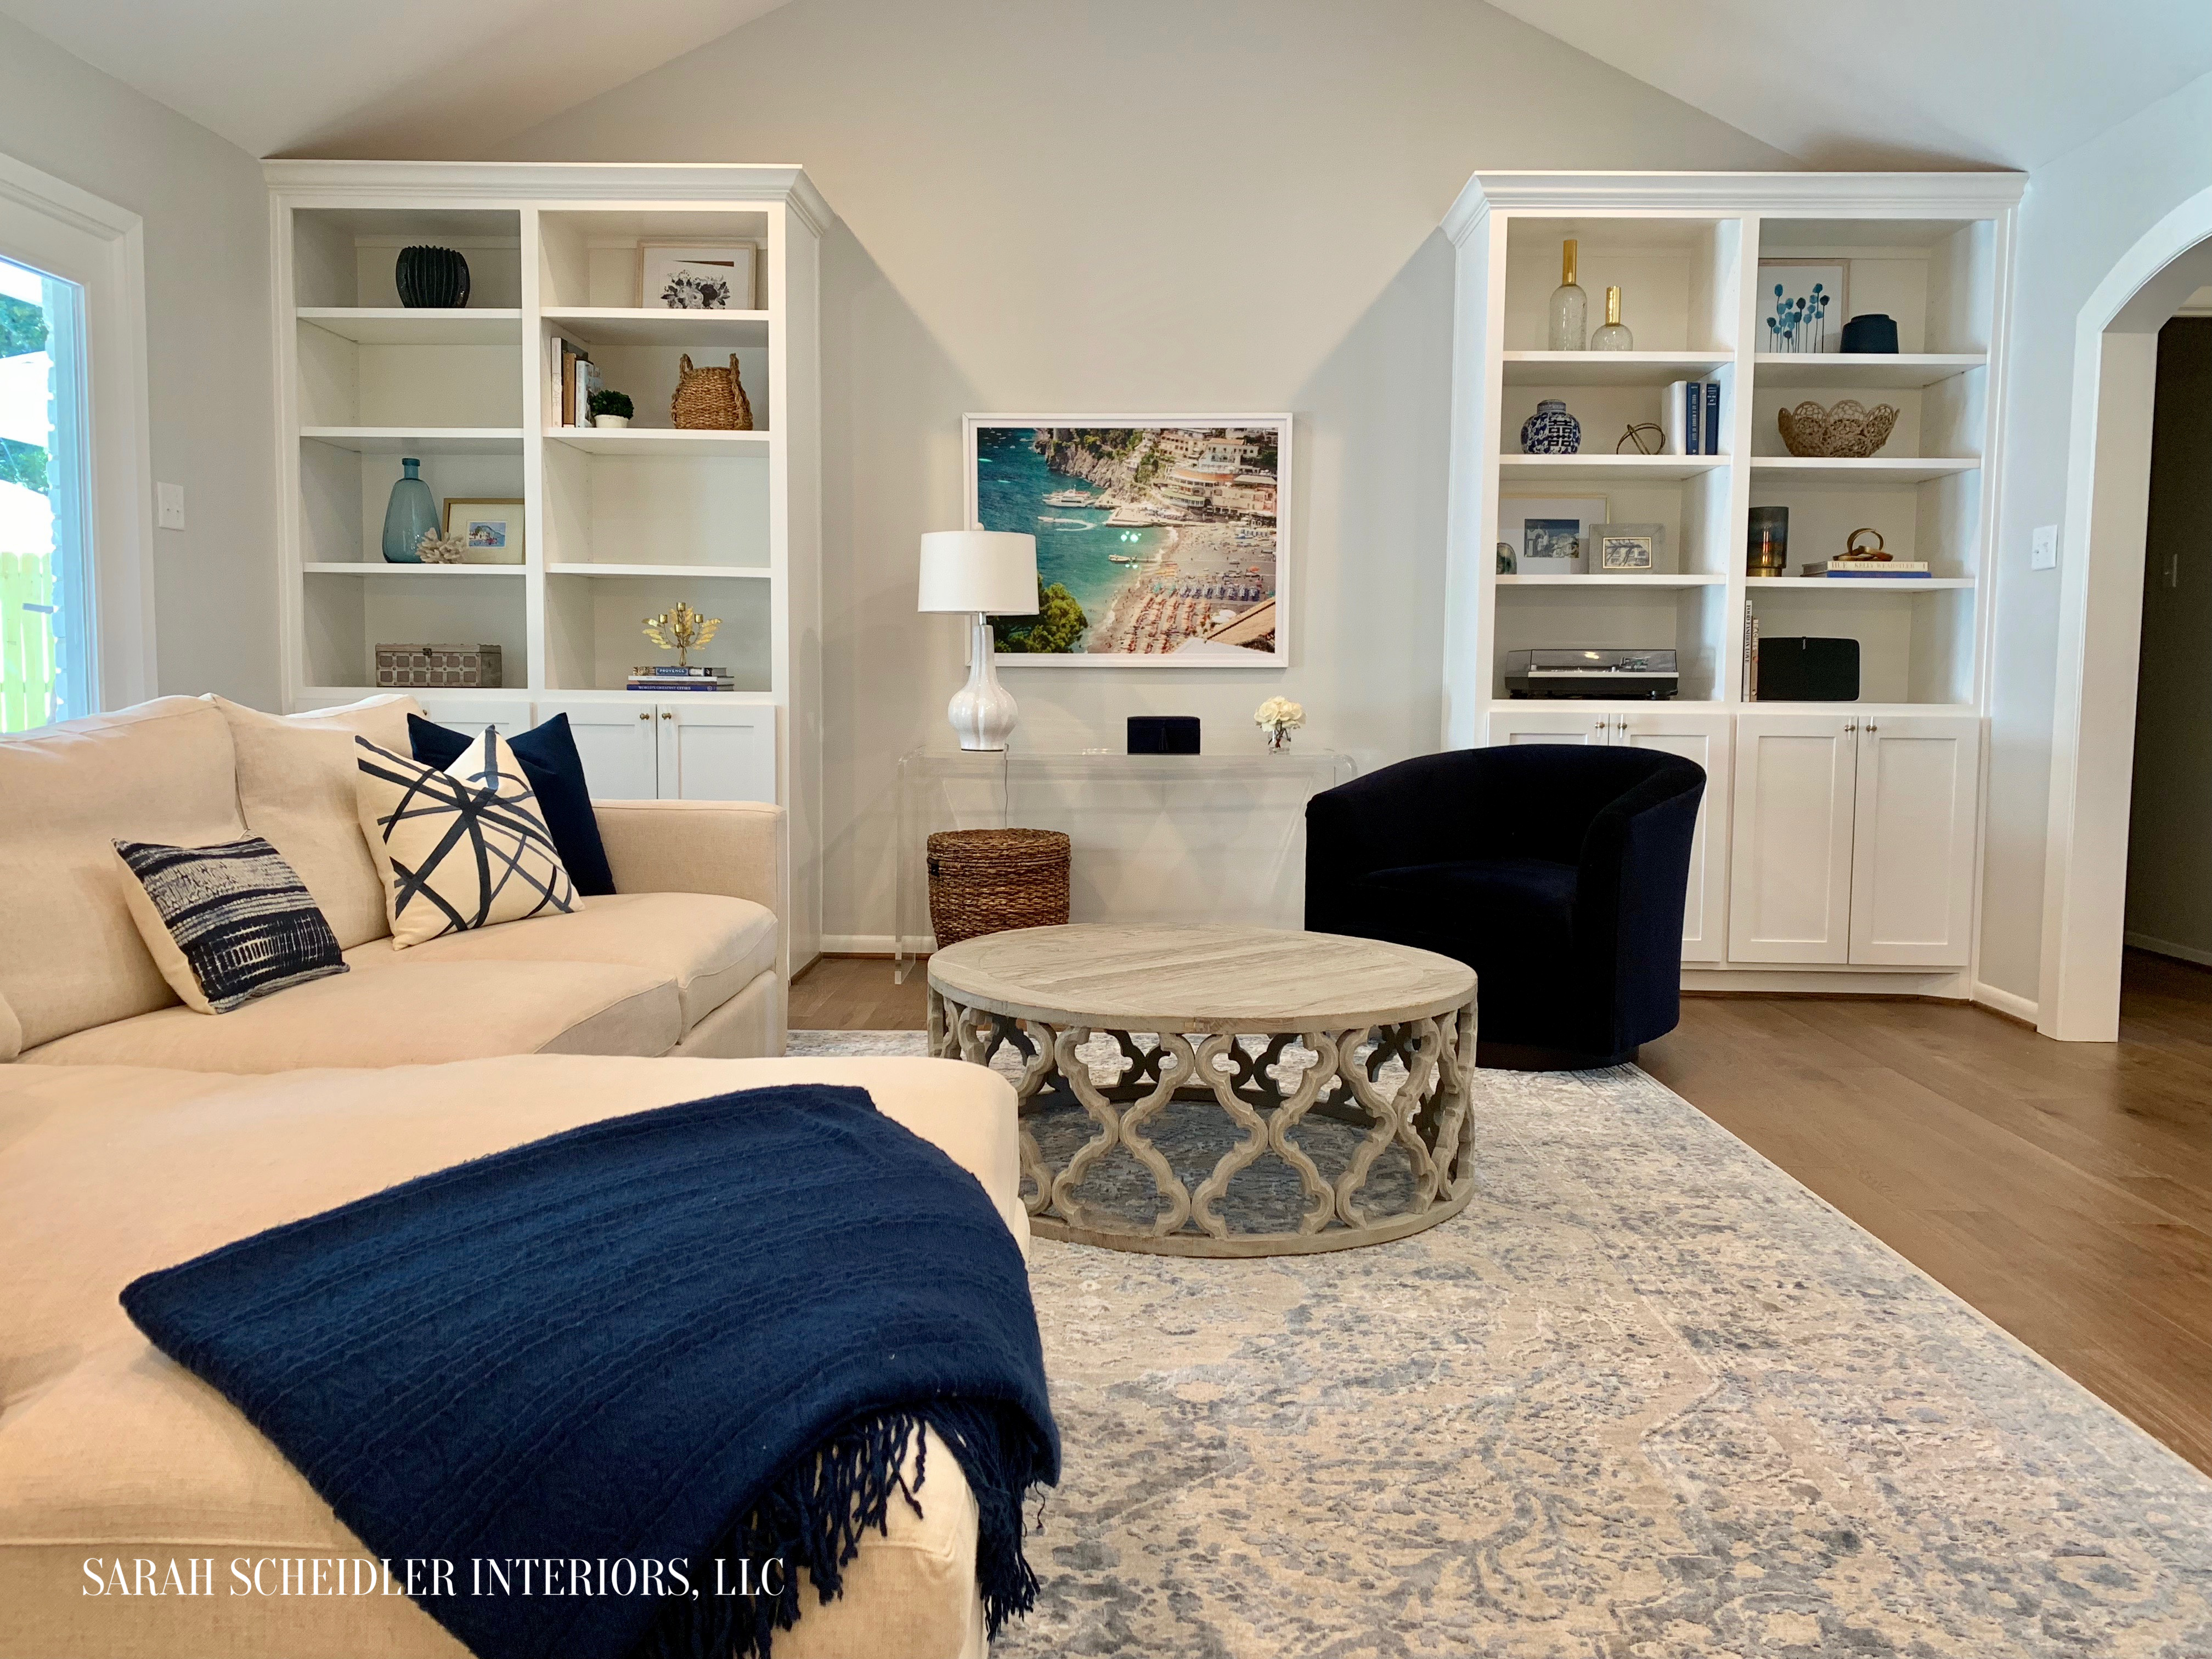 Coastal Cool Living Room Design with White Built-Ins, Blue Accents, Clear Acrylic Console Table, and Colorful Italian Art